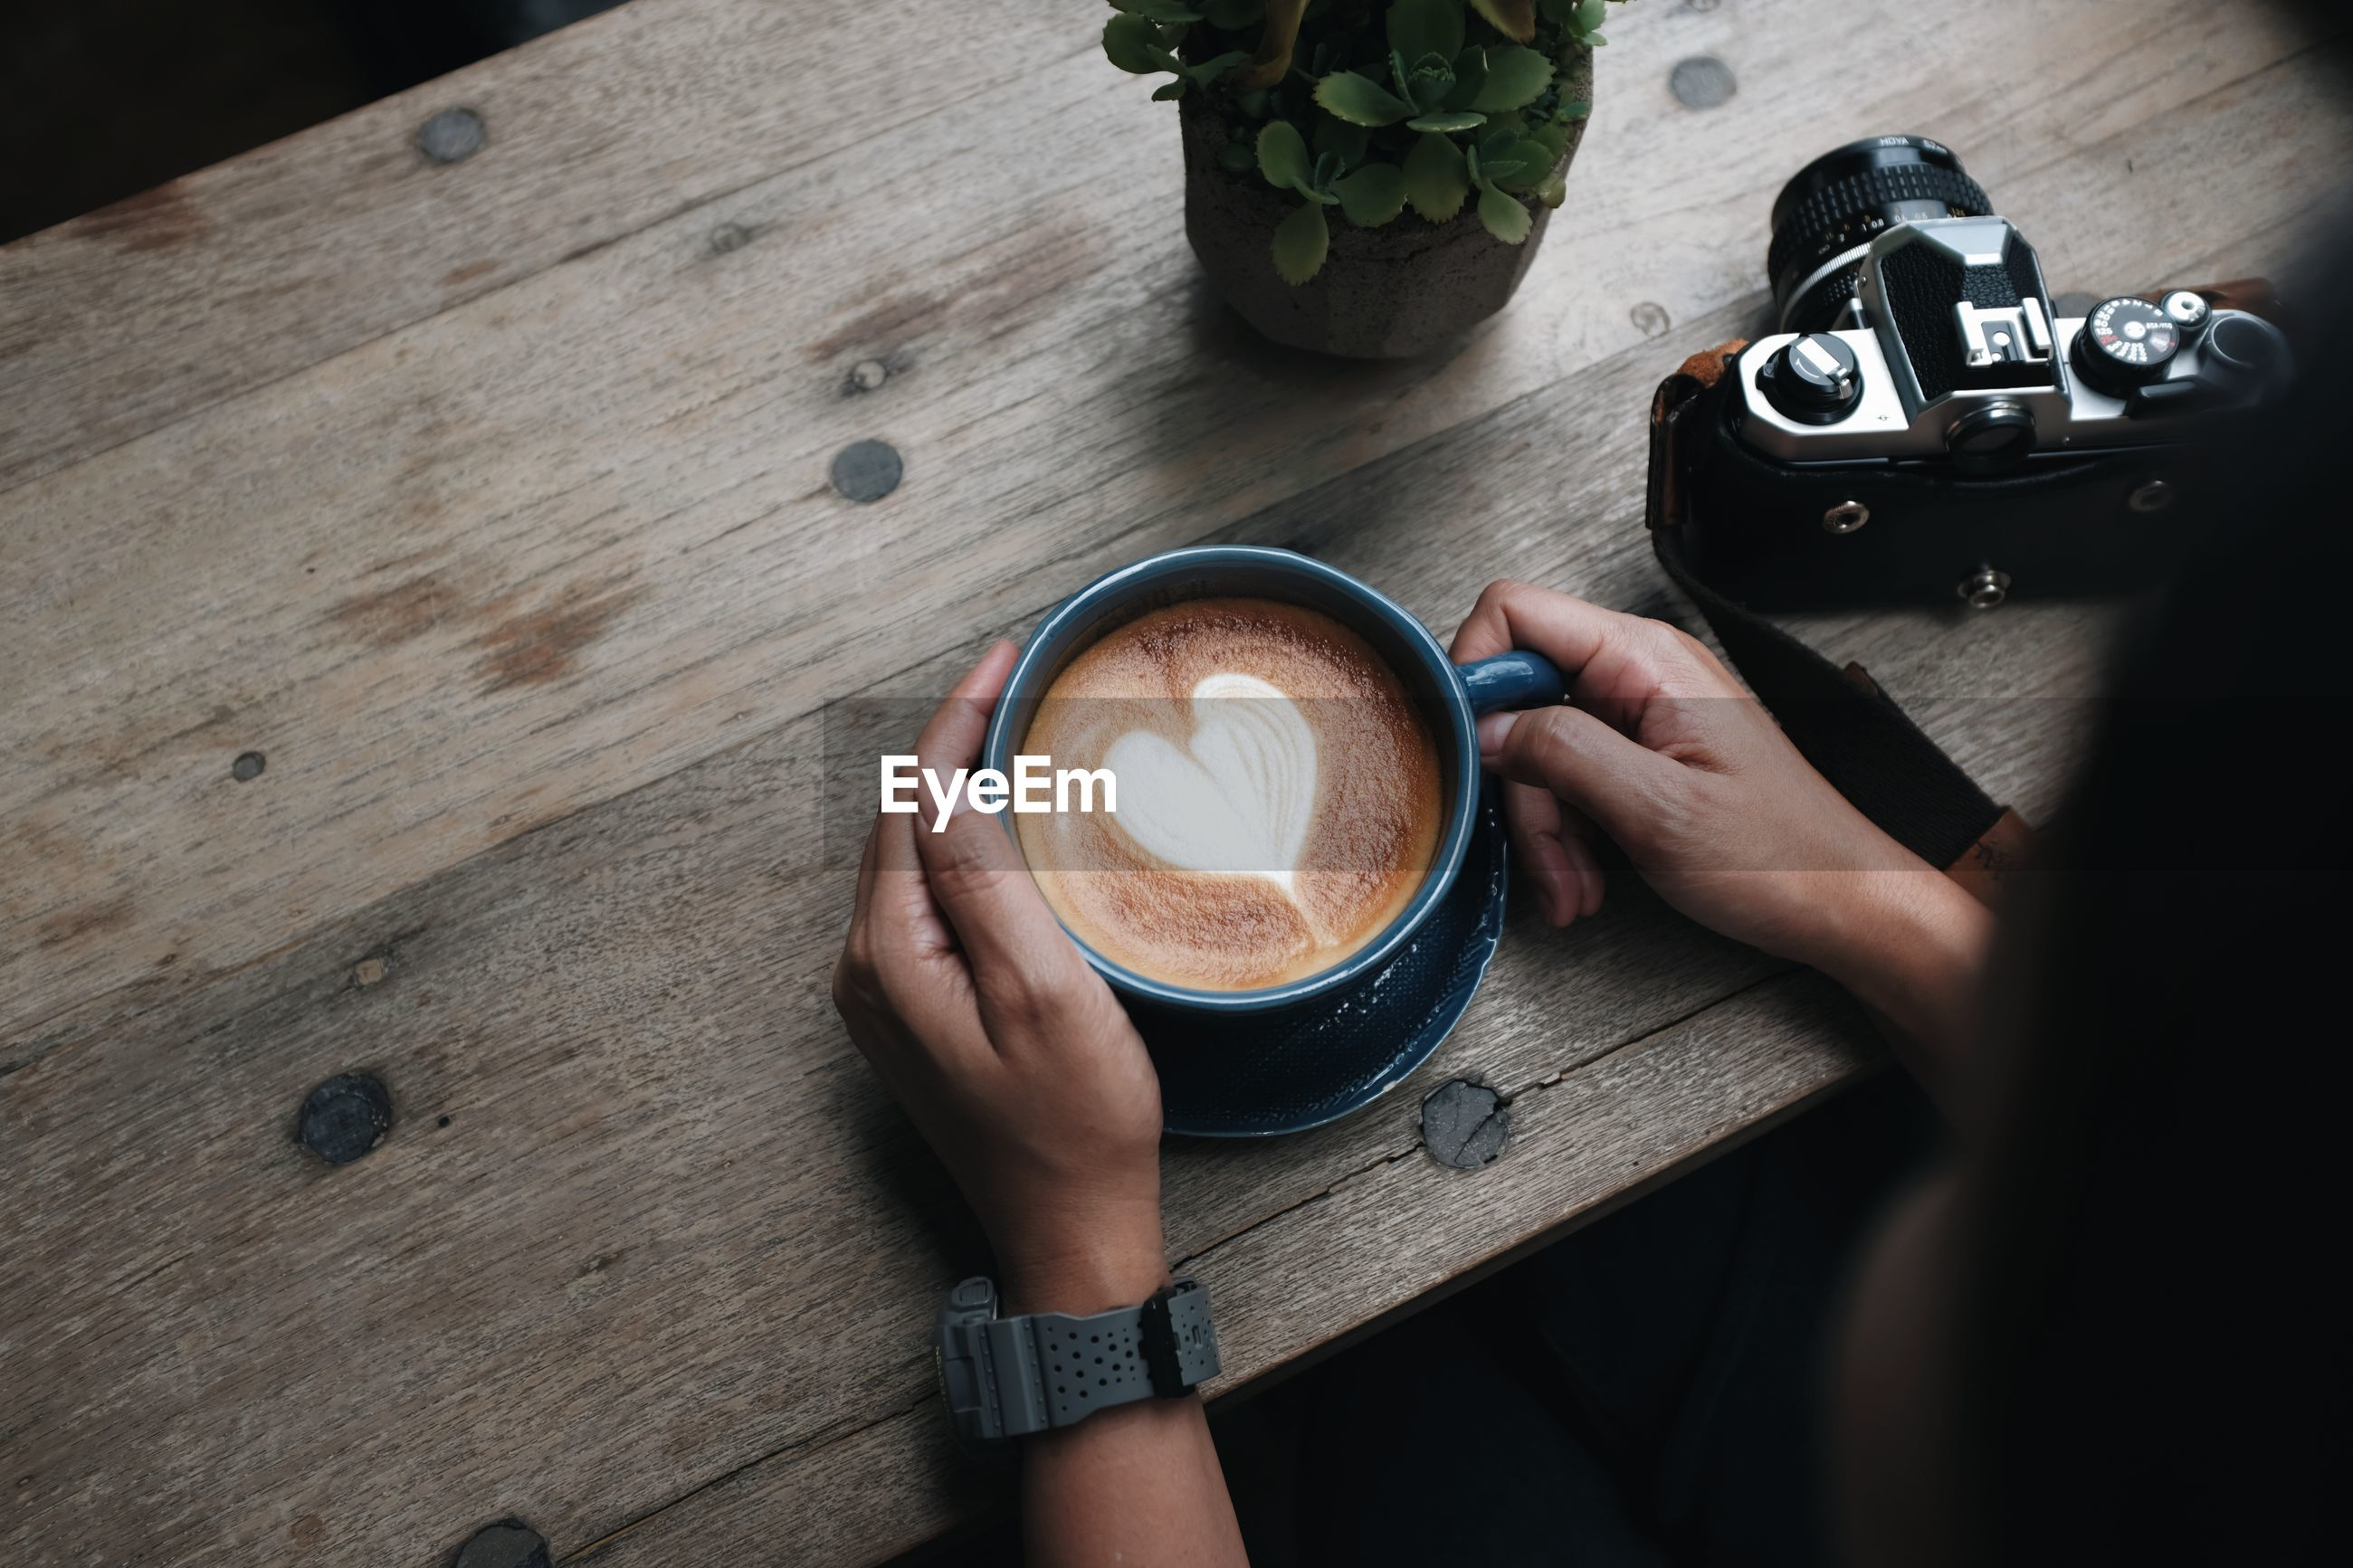 A close up view of a woman's hand holding a latte coffee cup on a wooden table in a coffee shop